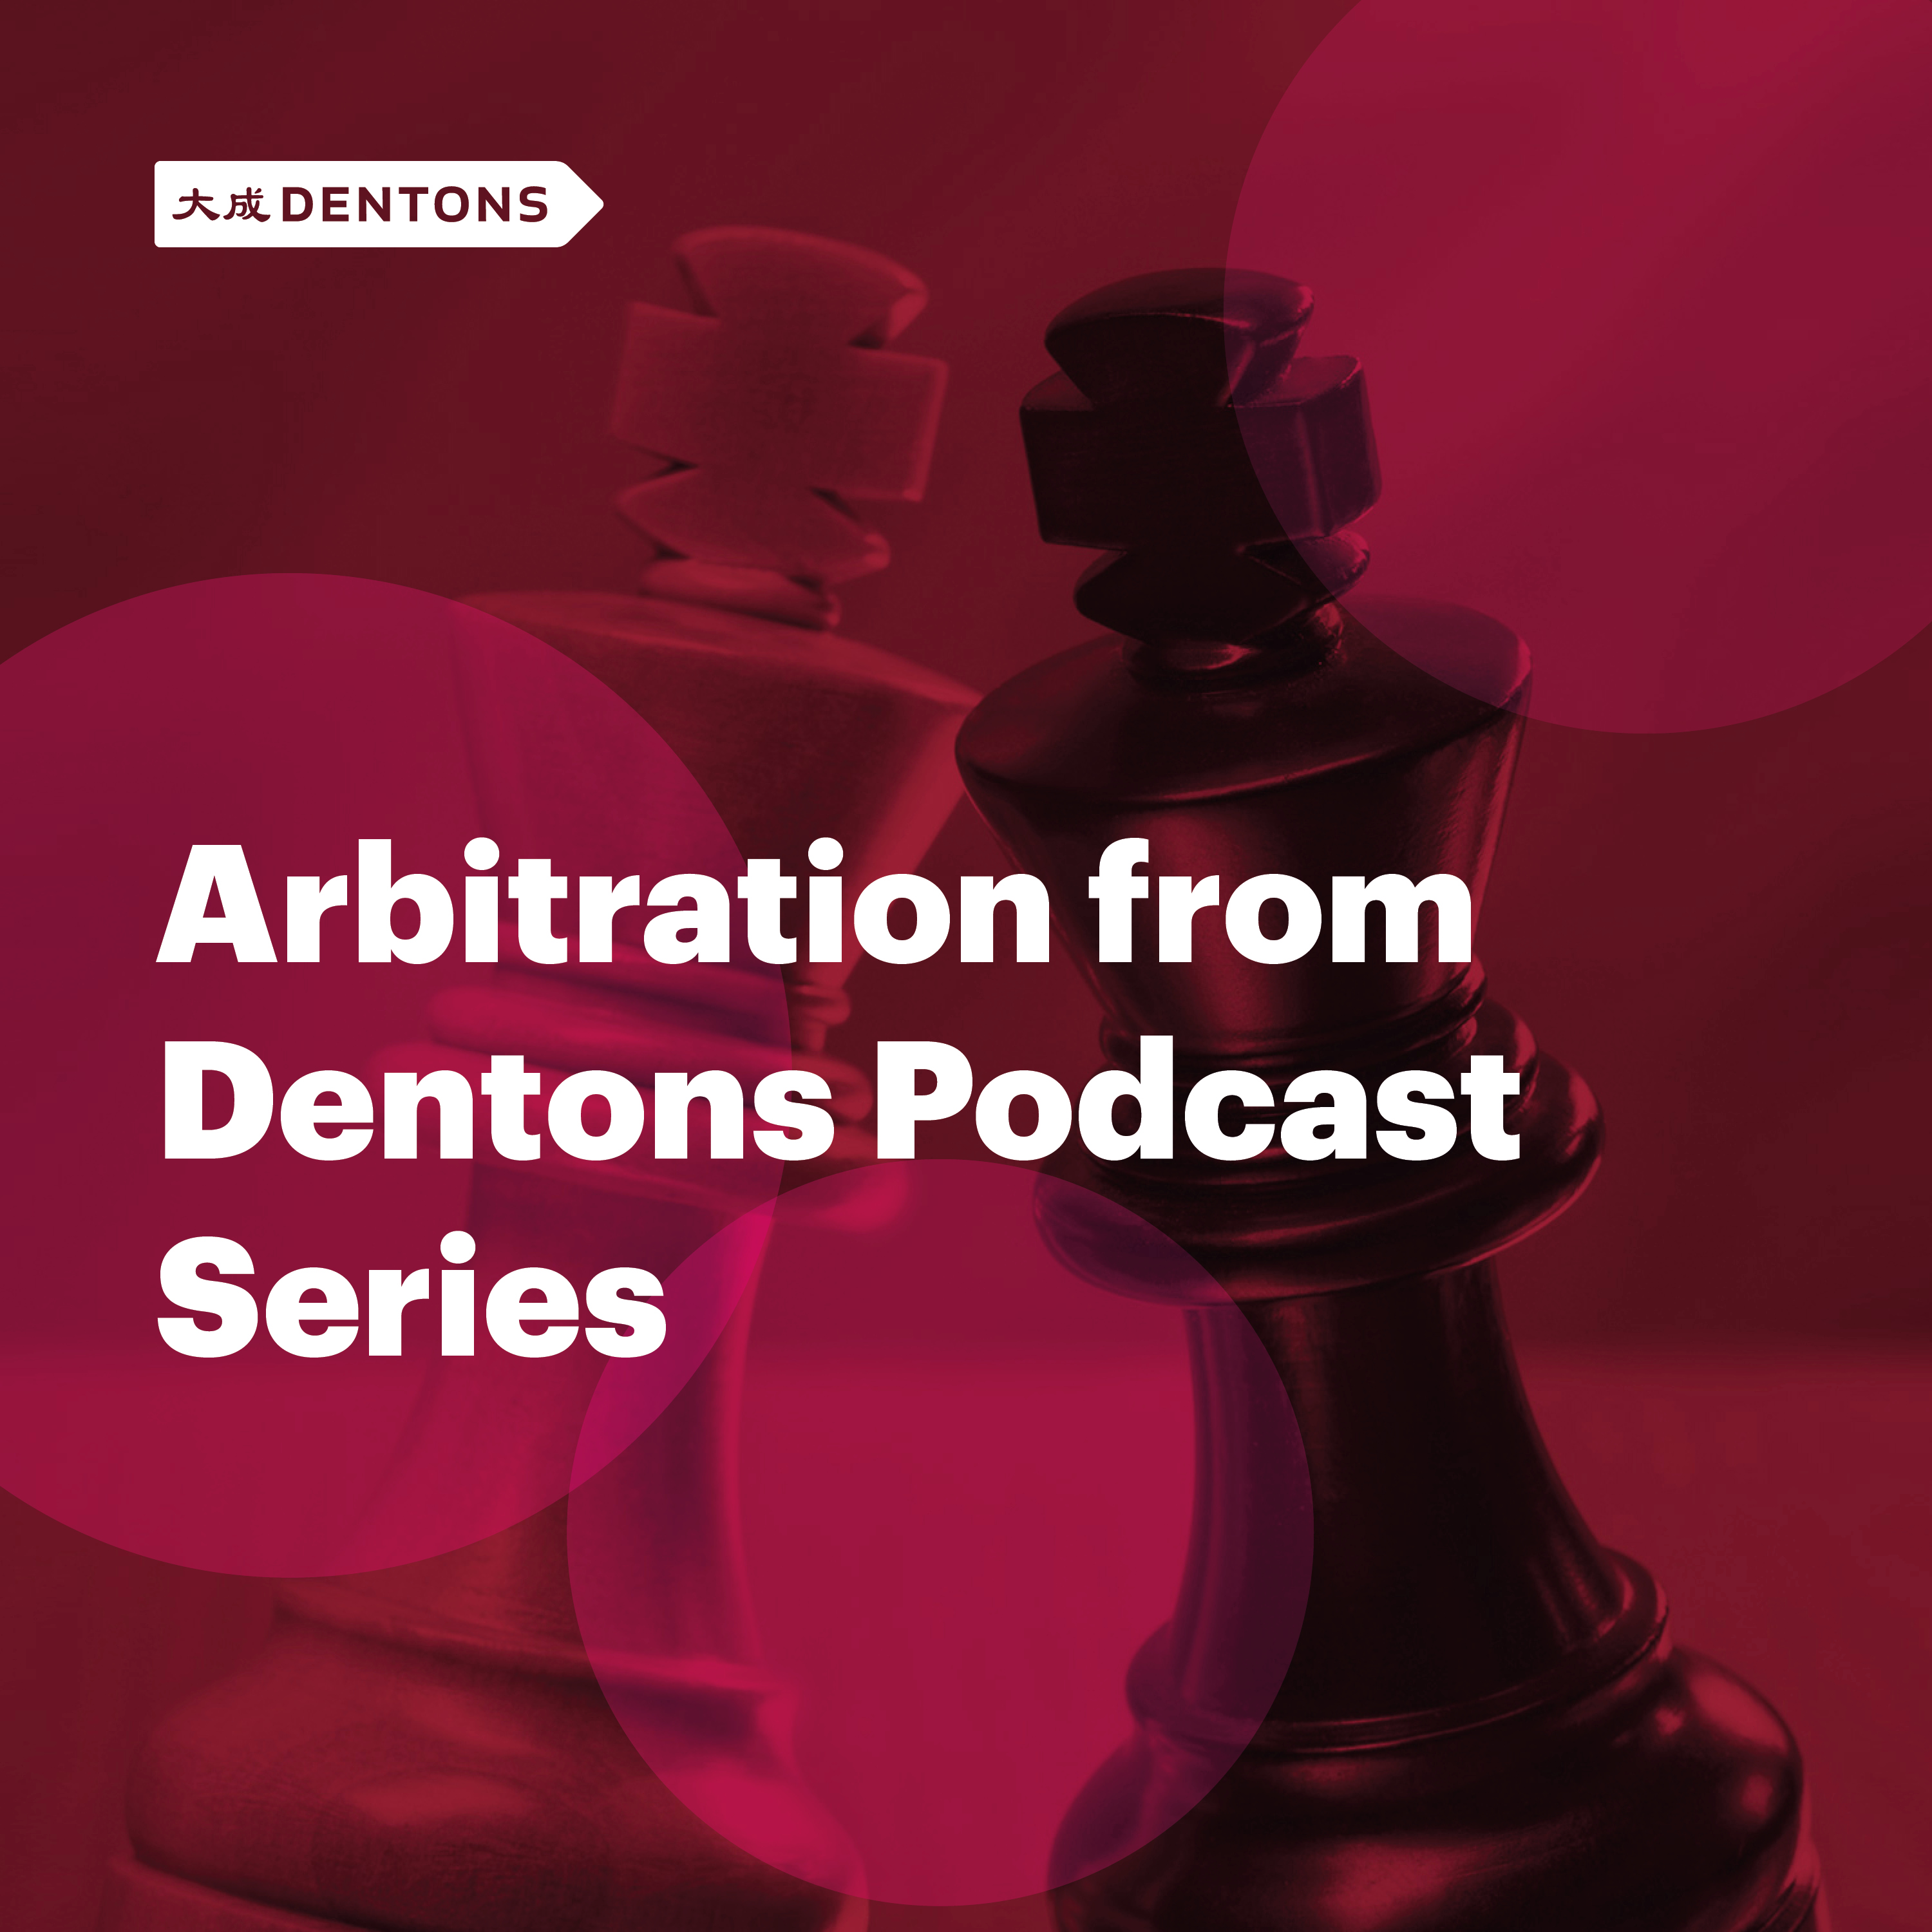 Artwork for podcast Arbitration from Dentons Podcast Series